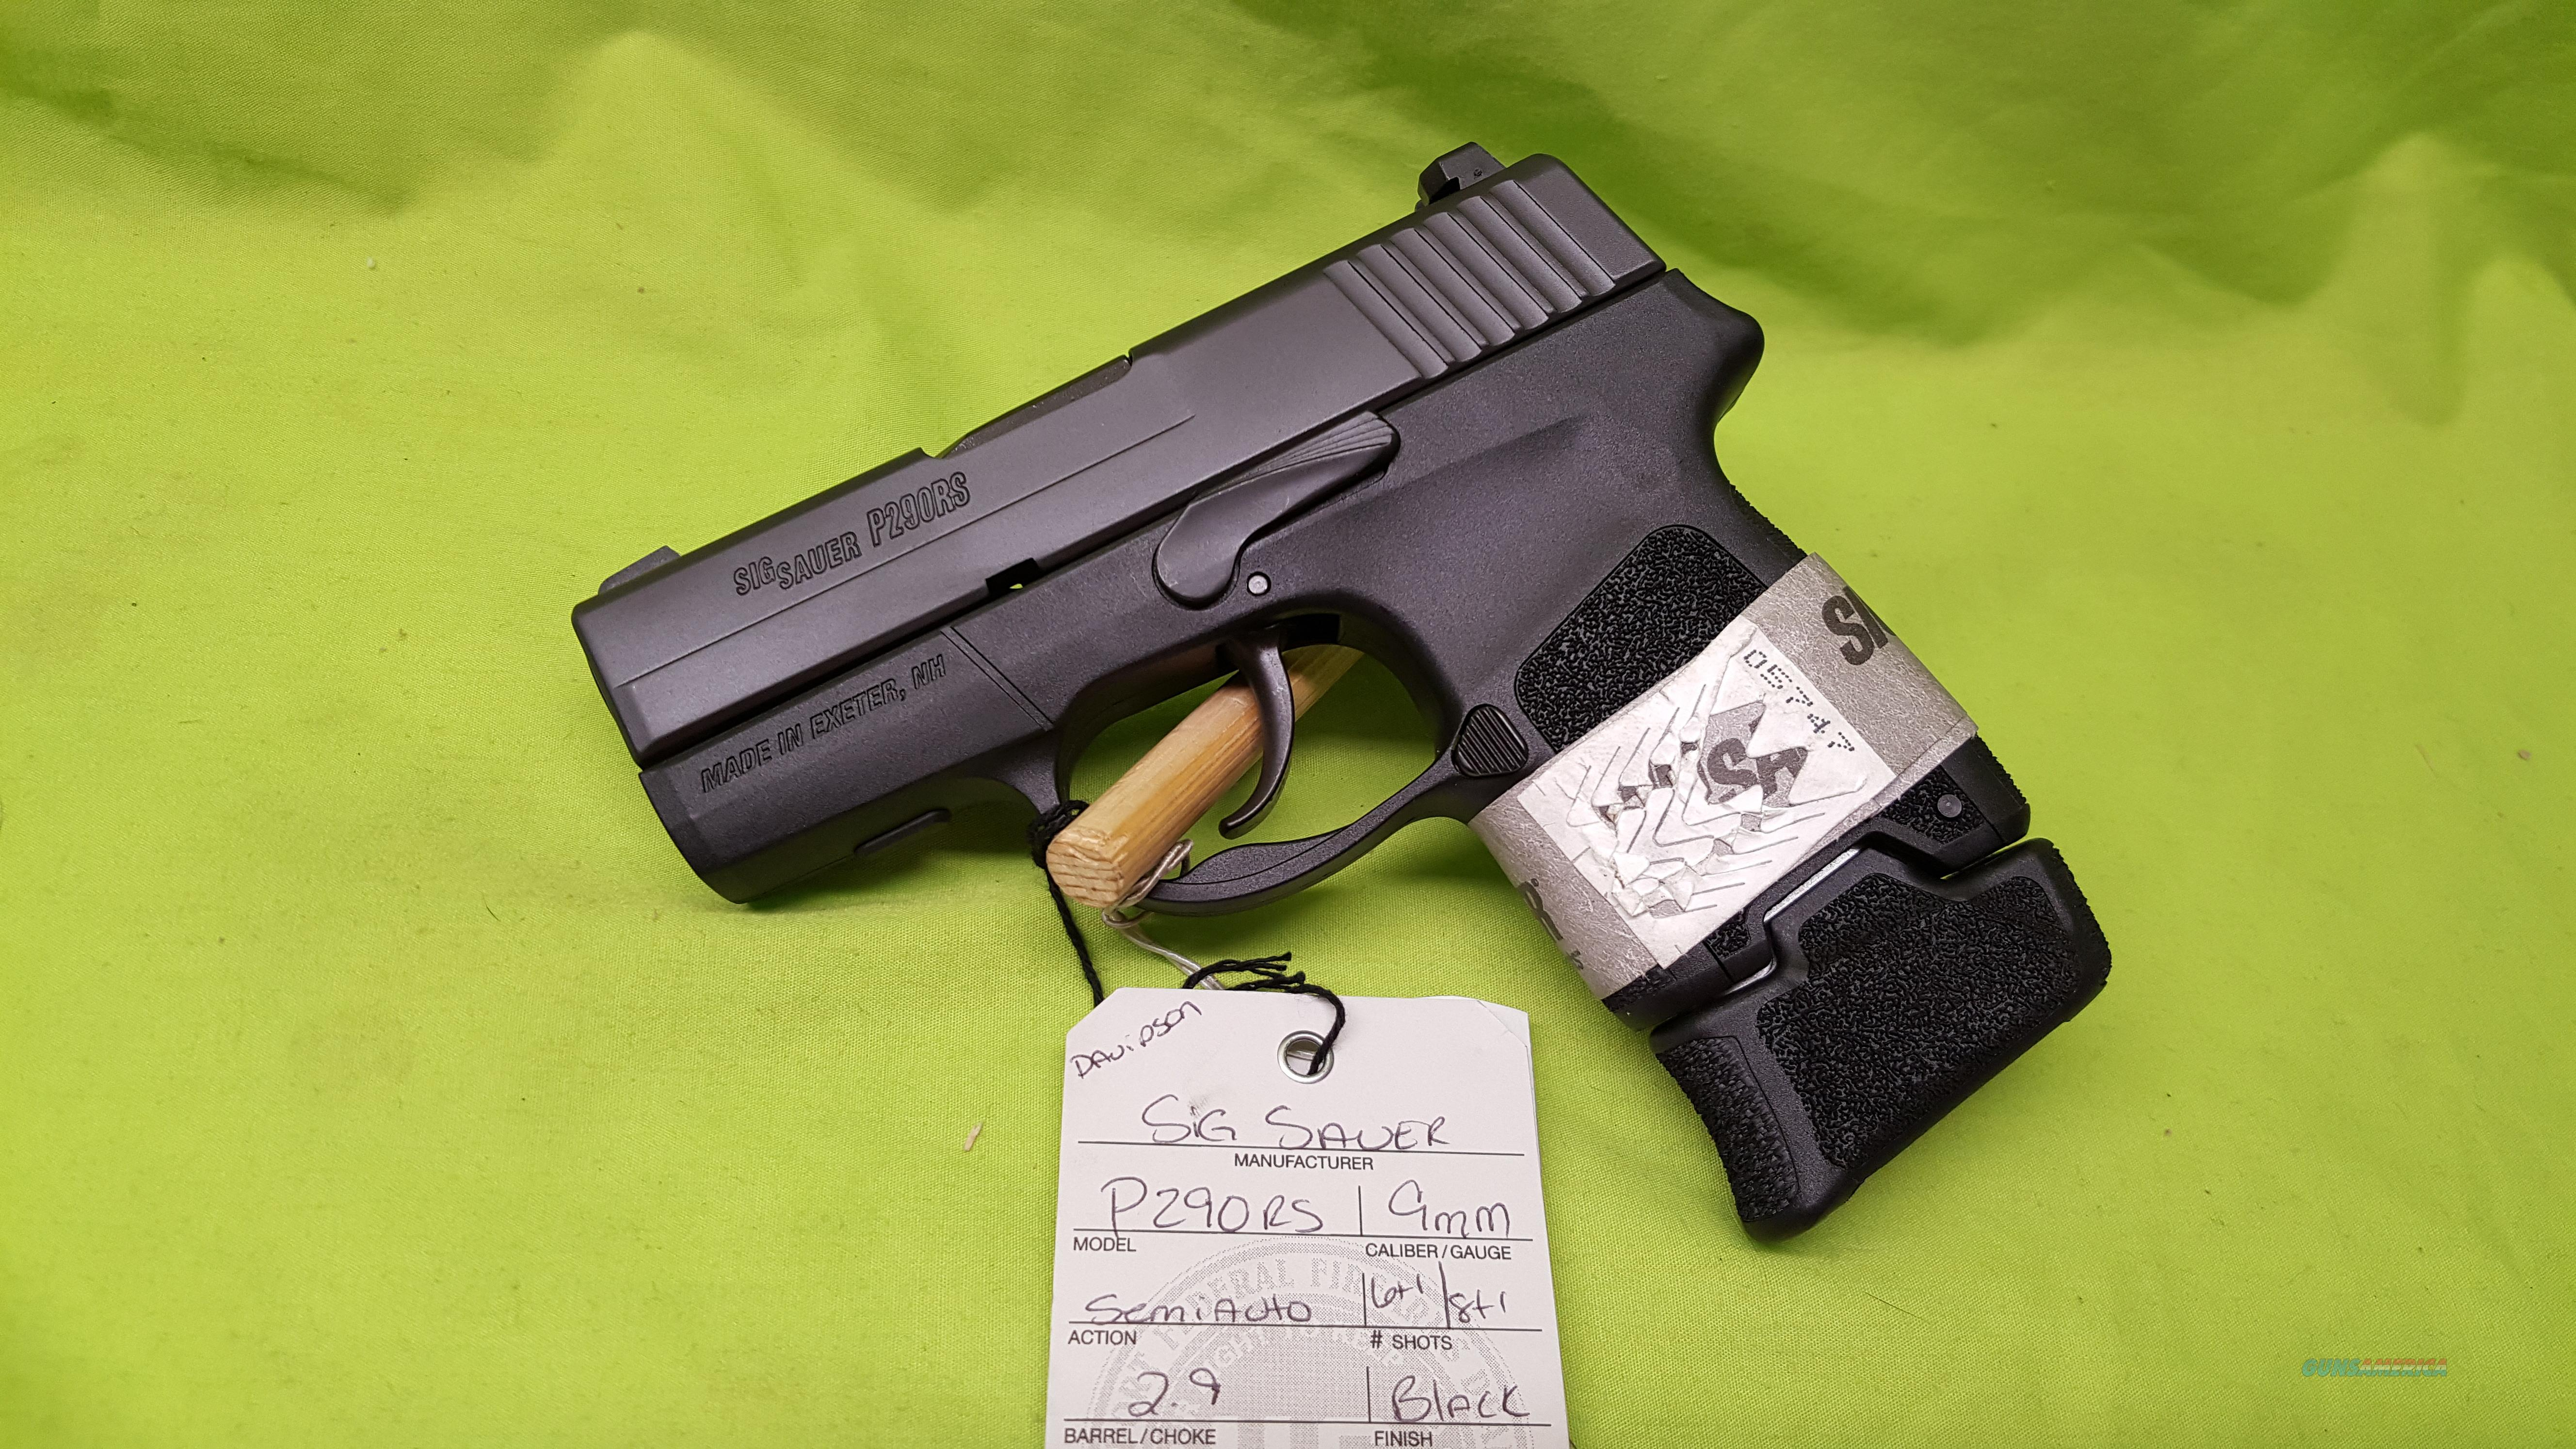 "SIG SAUER P290RS P290 9MM 6/8RD 2.9"" BLACK  Guns > Pistols > Sig - Sauer/Sigarms Pistols > P290"